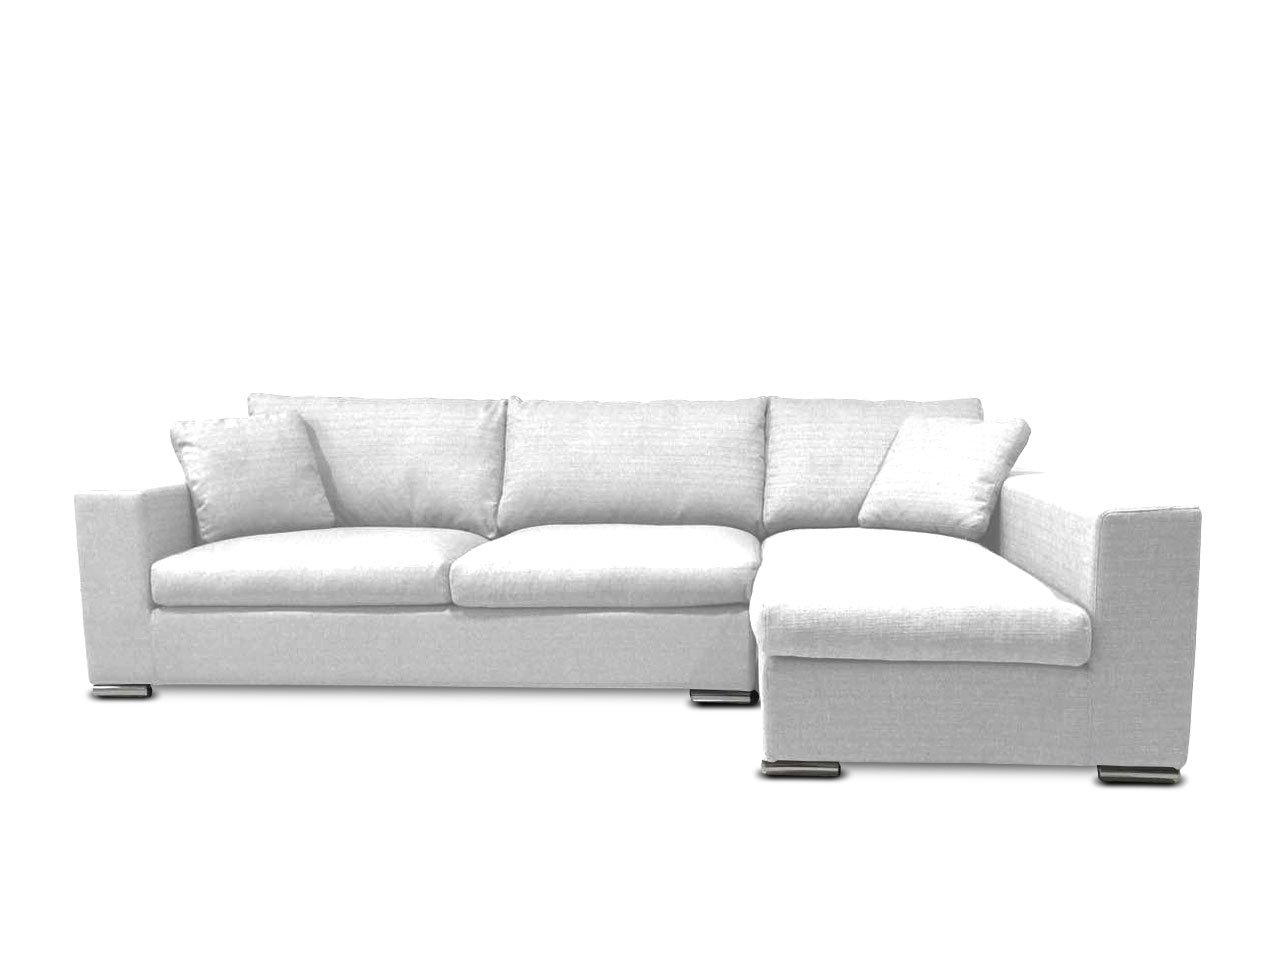 KMP Furniture Coleen Sectional Sofa & Right Chaise Lounge - White - Highly detailed upholstery and precisely stitched. Fade resistant fabric. High-density resiliency foam seats and back with sturdy spring system. - sofas-couches, living-room-furniture, living-room - 51d2z5cEryL -